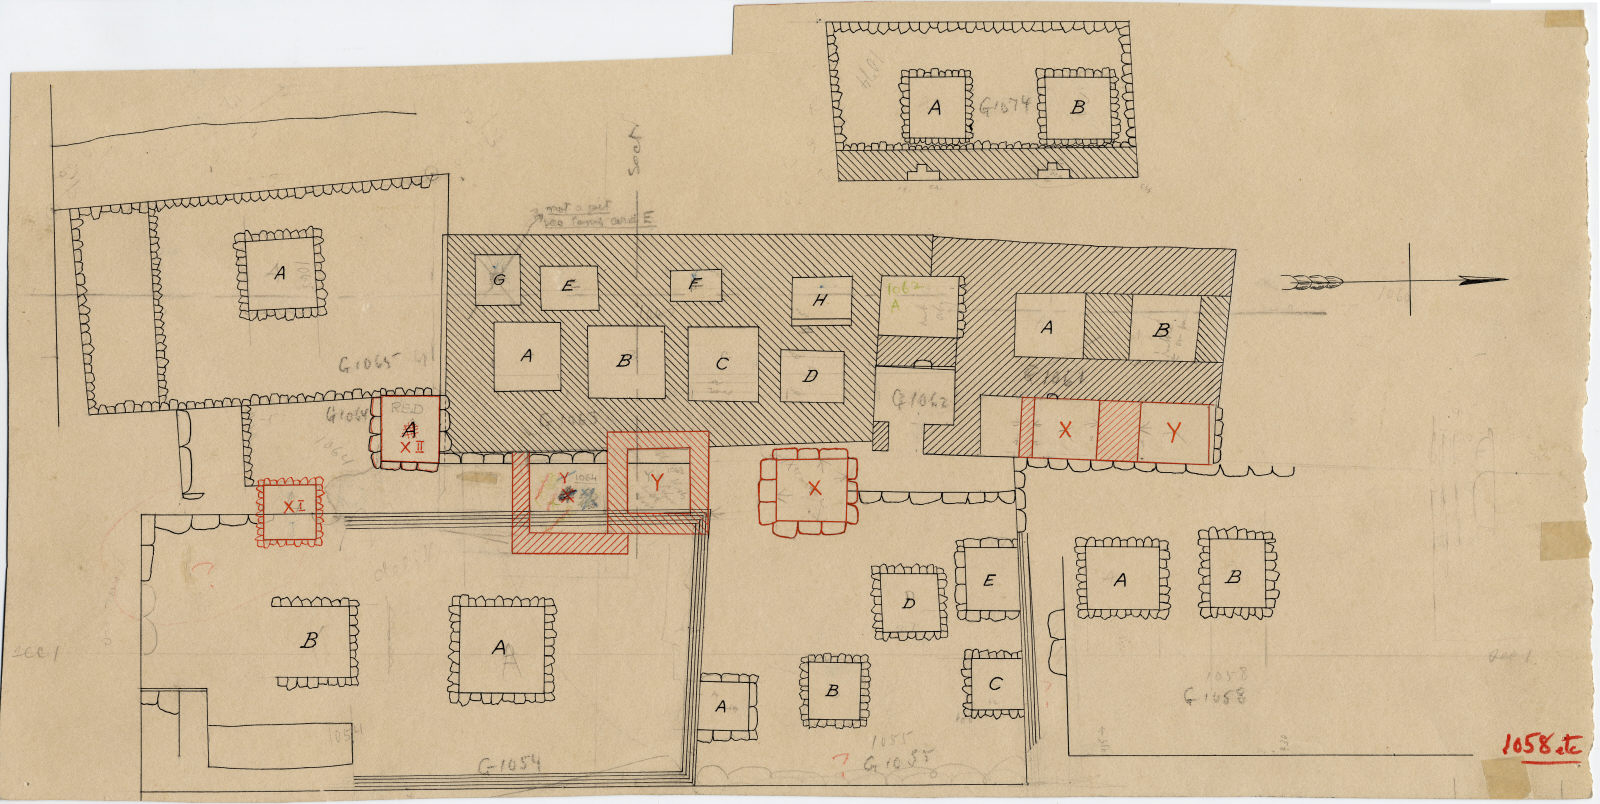 Maps and plans: Plan of cemetery G 1000 (partial)